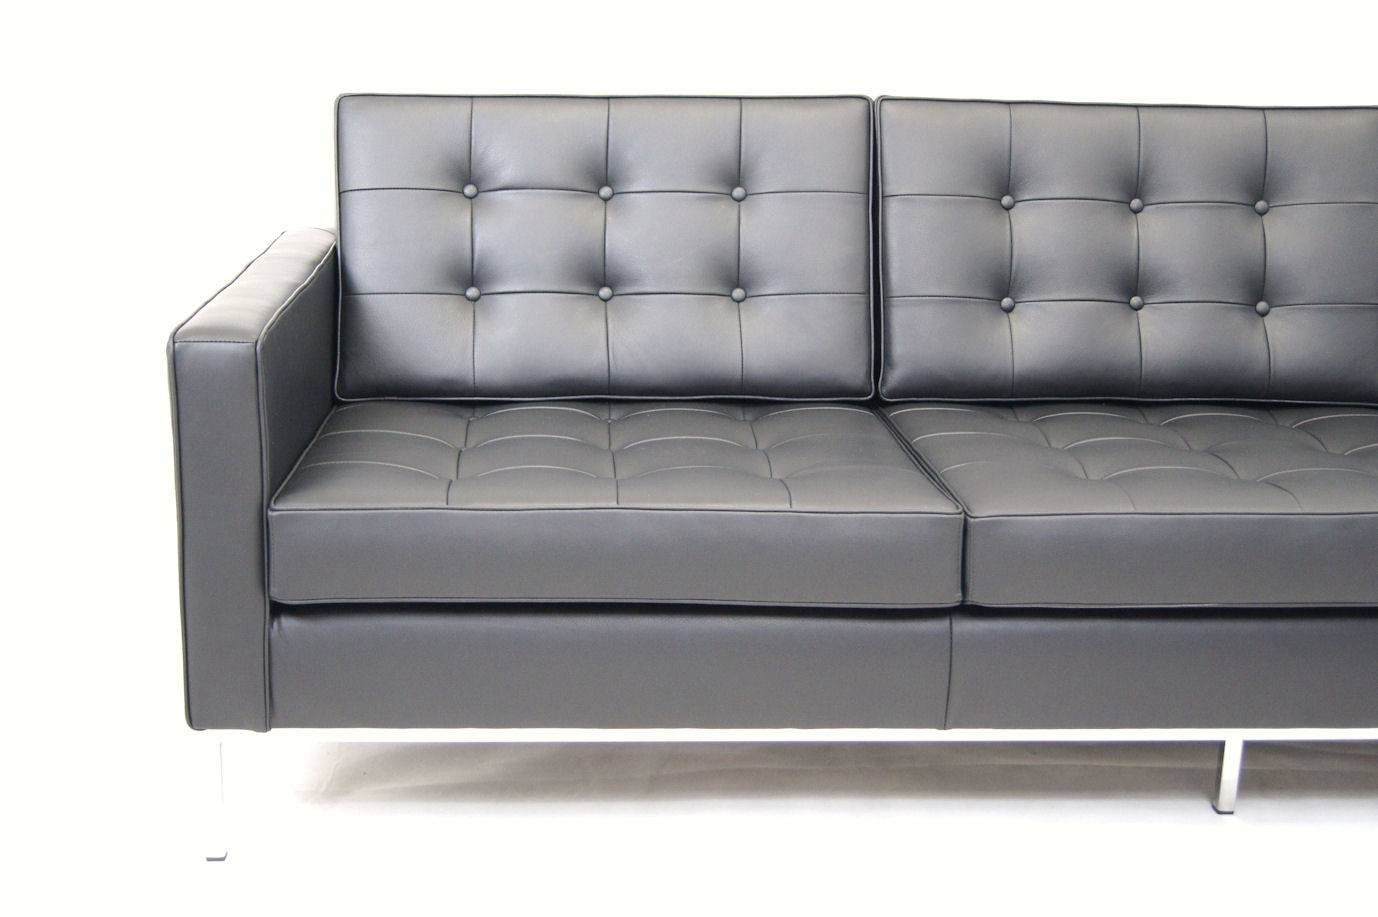 Decoration Knoll Florence Sofa With Florence Knoll Sofa Florence with Florence Knoll Fabric Sofas (Image 6 of 25)